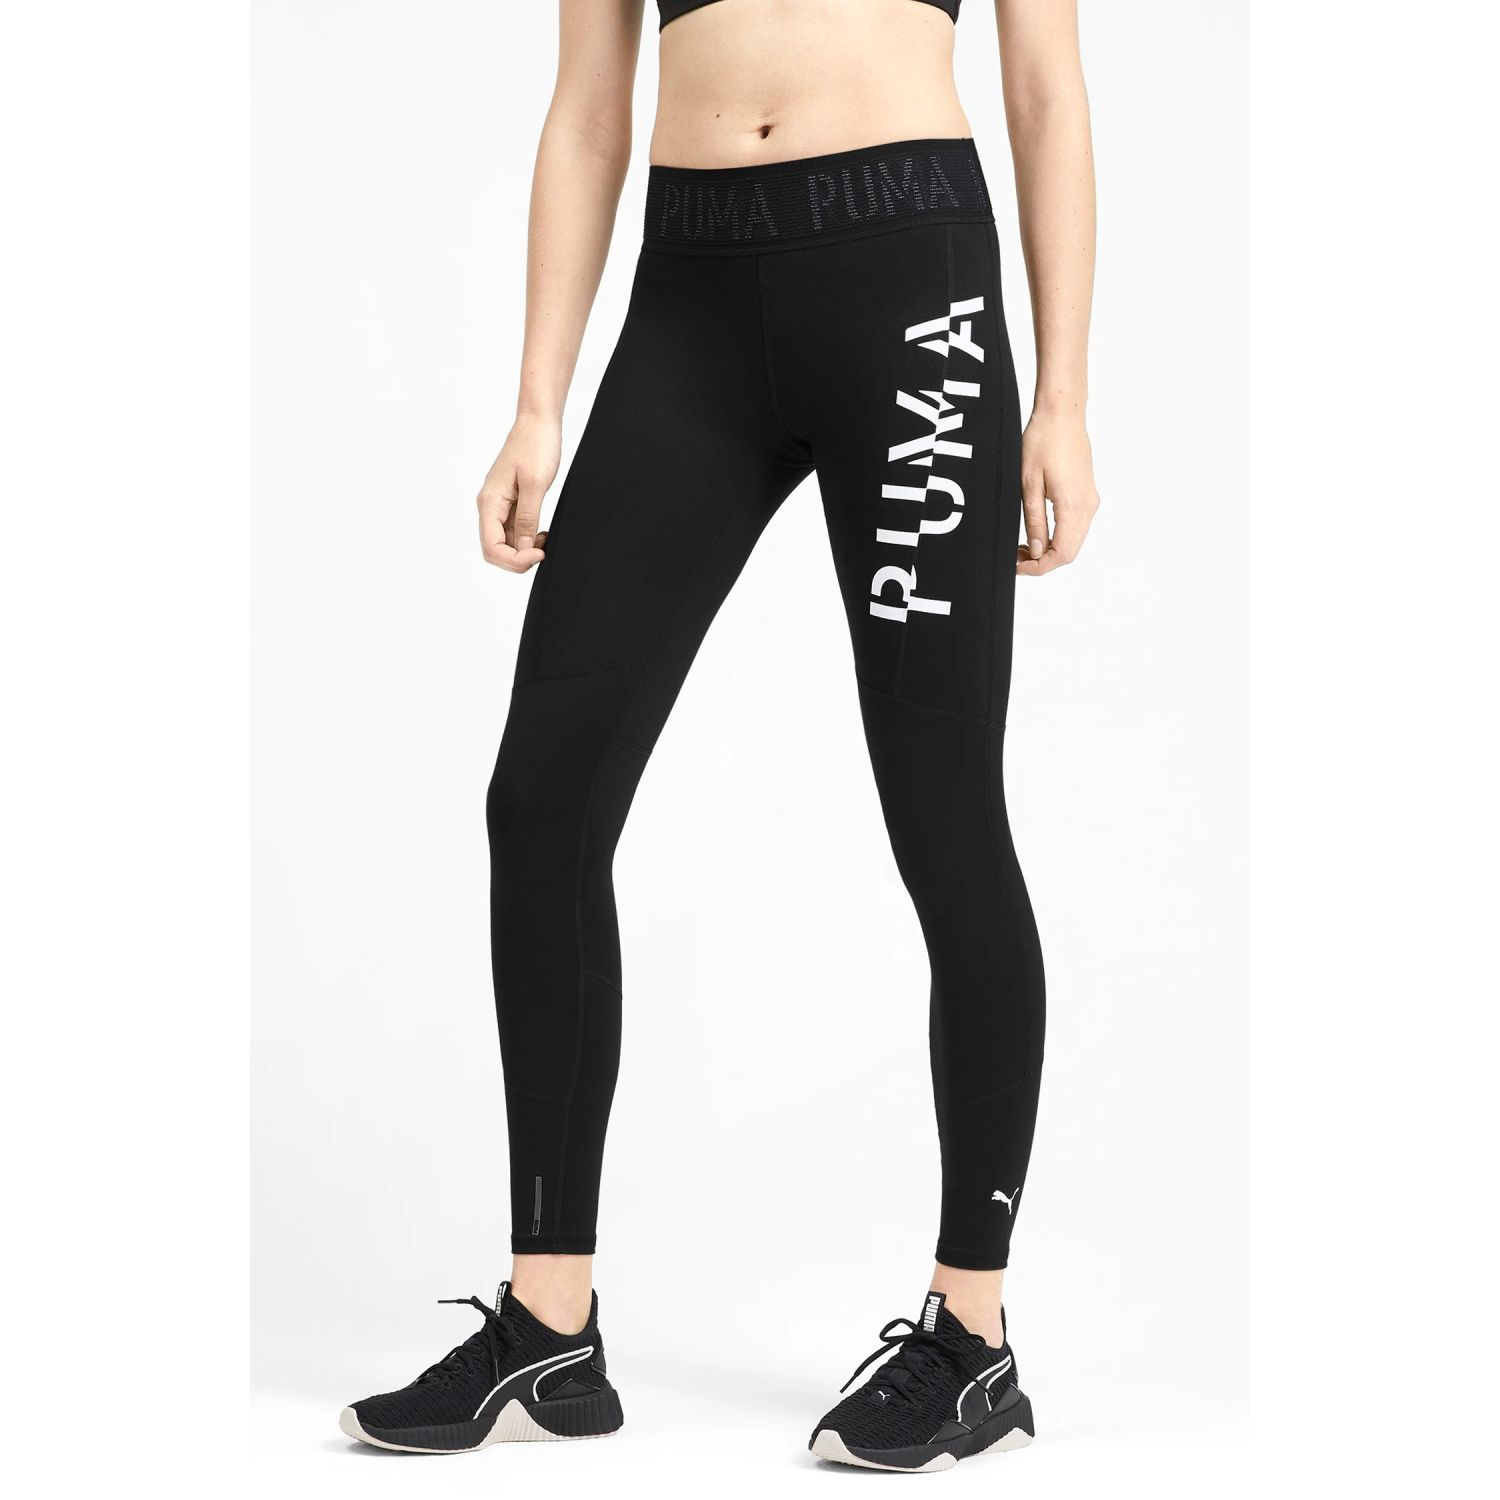 Puma logo 7/8 tight Negro / blanco Leggings Deportivos